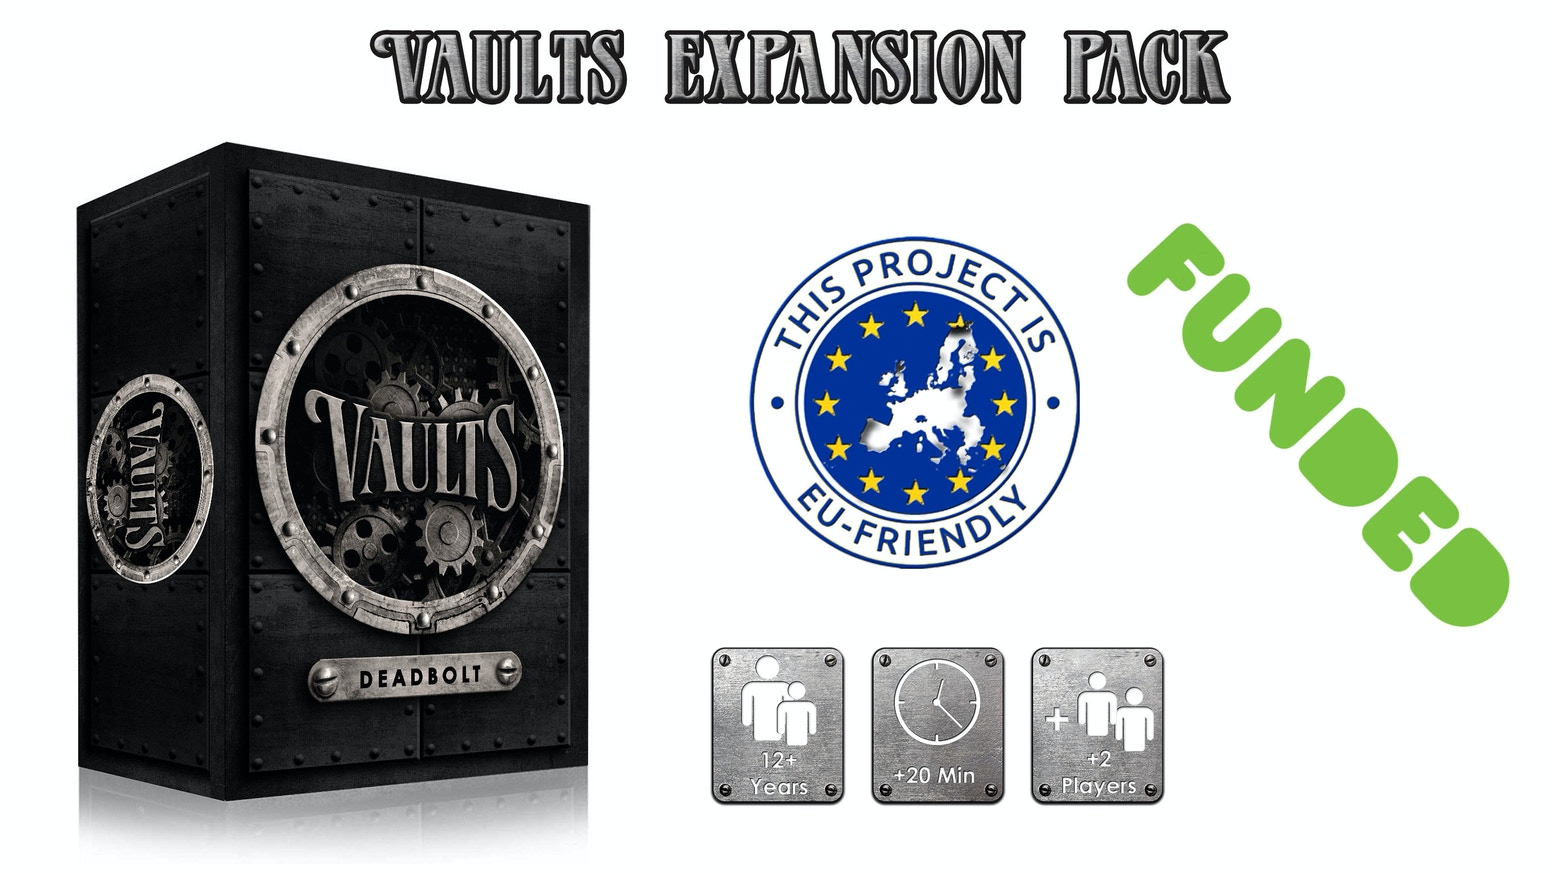 After the successful Kickstarter campaign for Vaults card game 4HOGS proudly present Deadbolt, an expansion pack for Vaults.